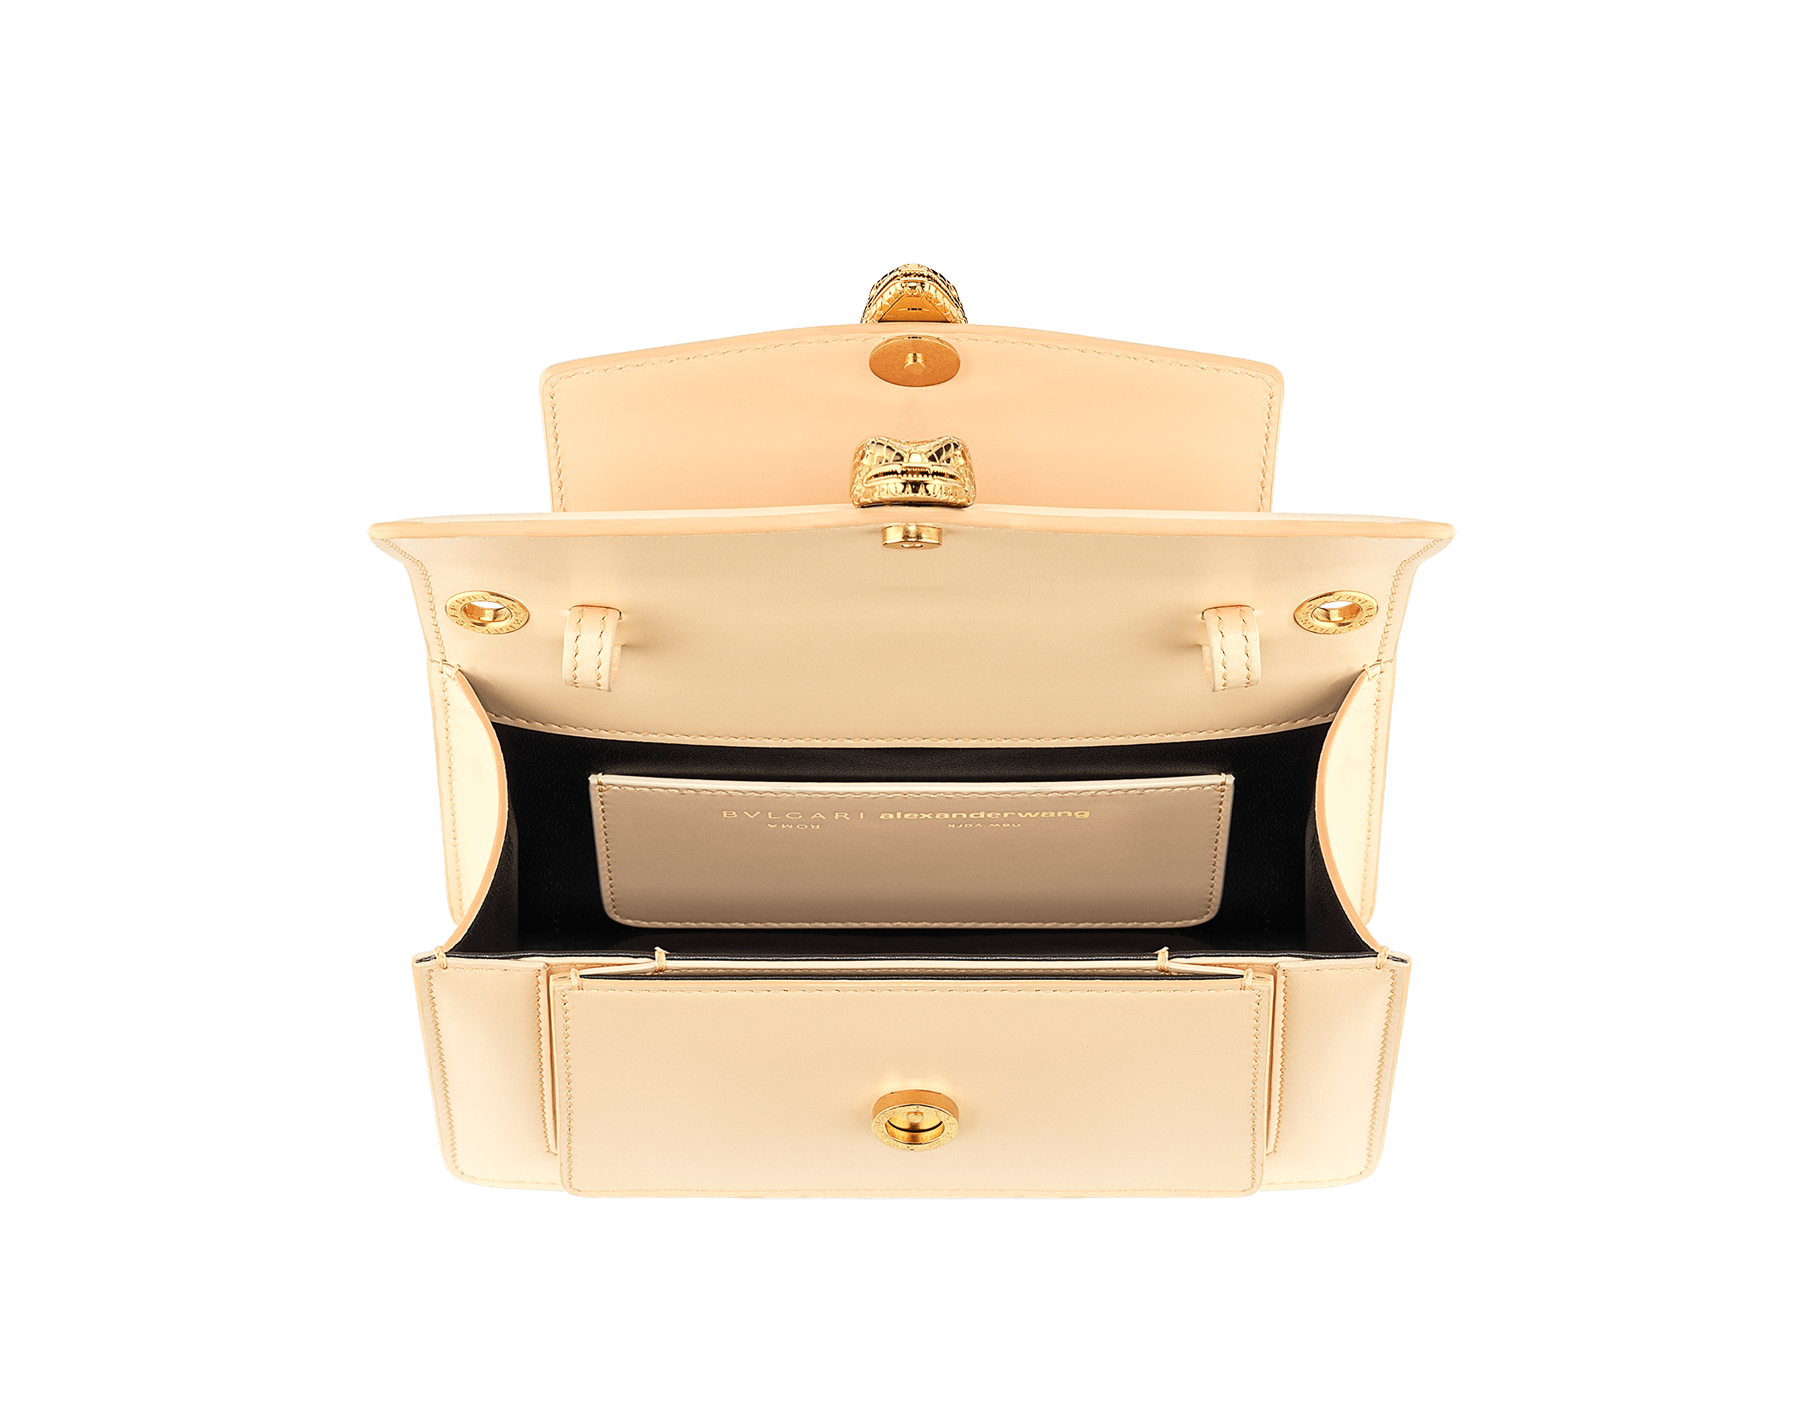 """Alexander Wang x Bvlgari"" belt bag in smooth peach calf leather. New double Serpenti head closure in antique gold plated brass with tempting red enamel eyes. Limited edition. 290308 image 5"